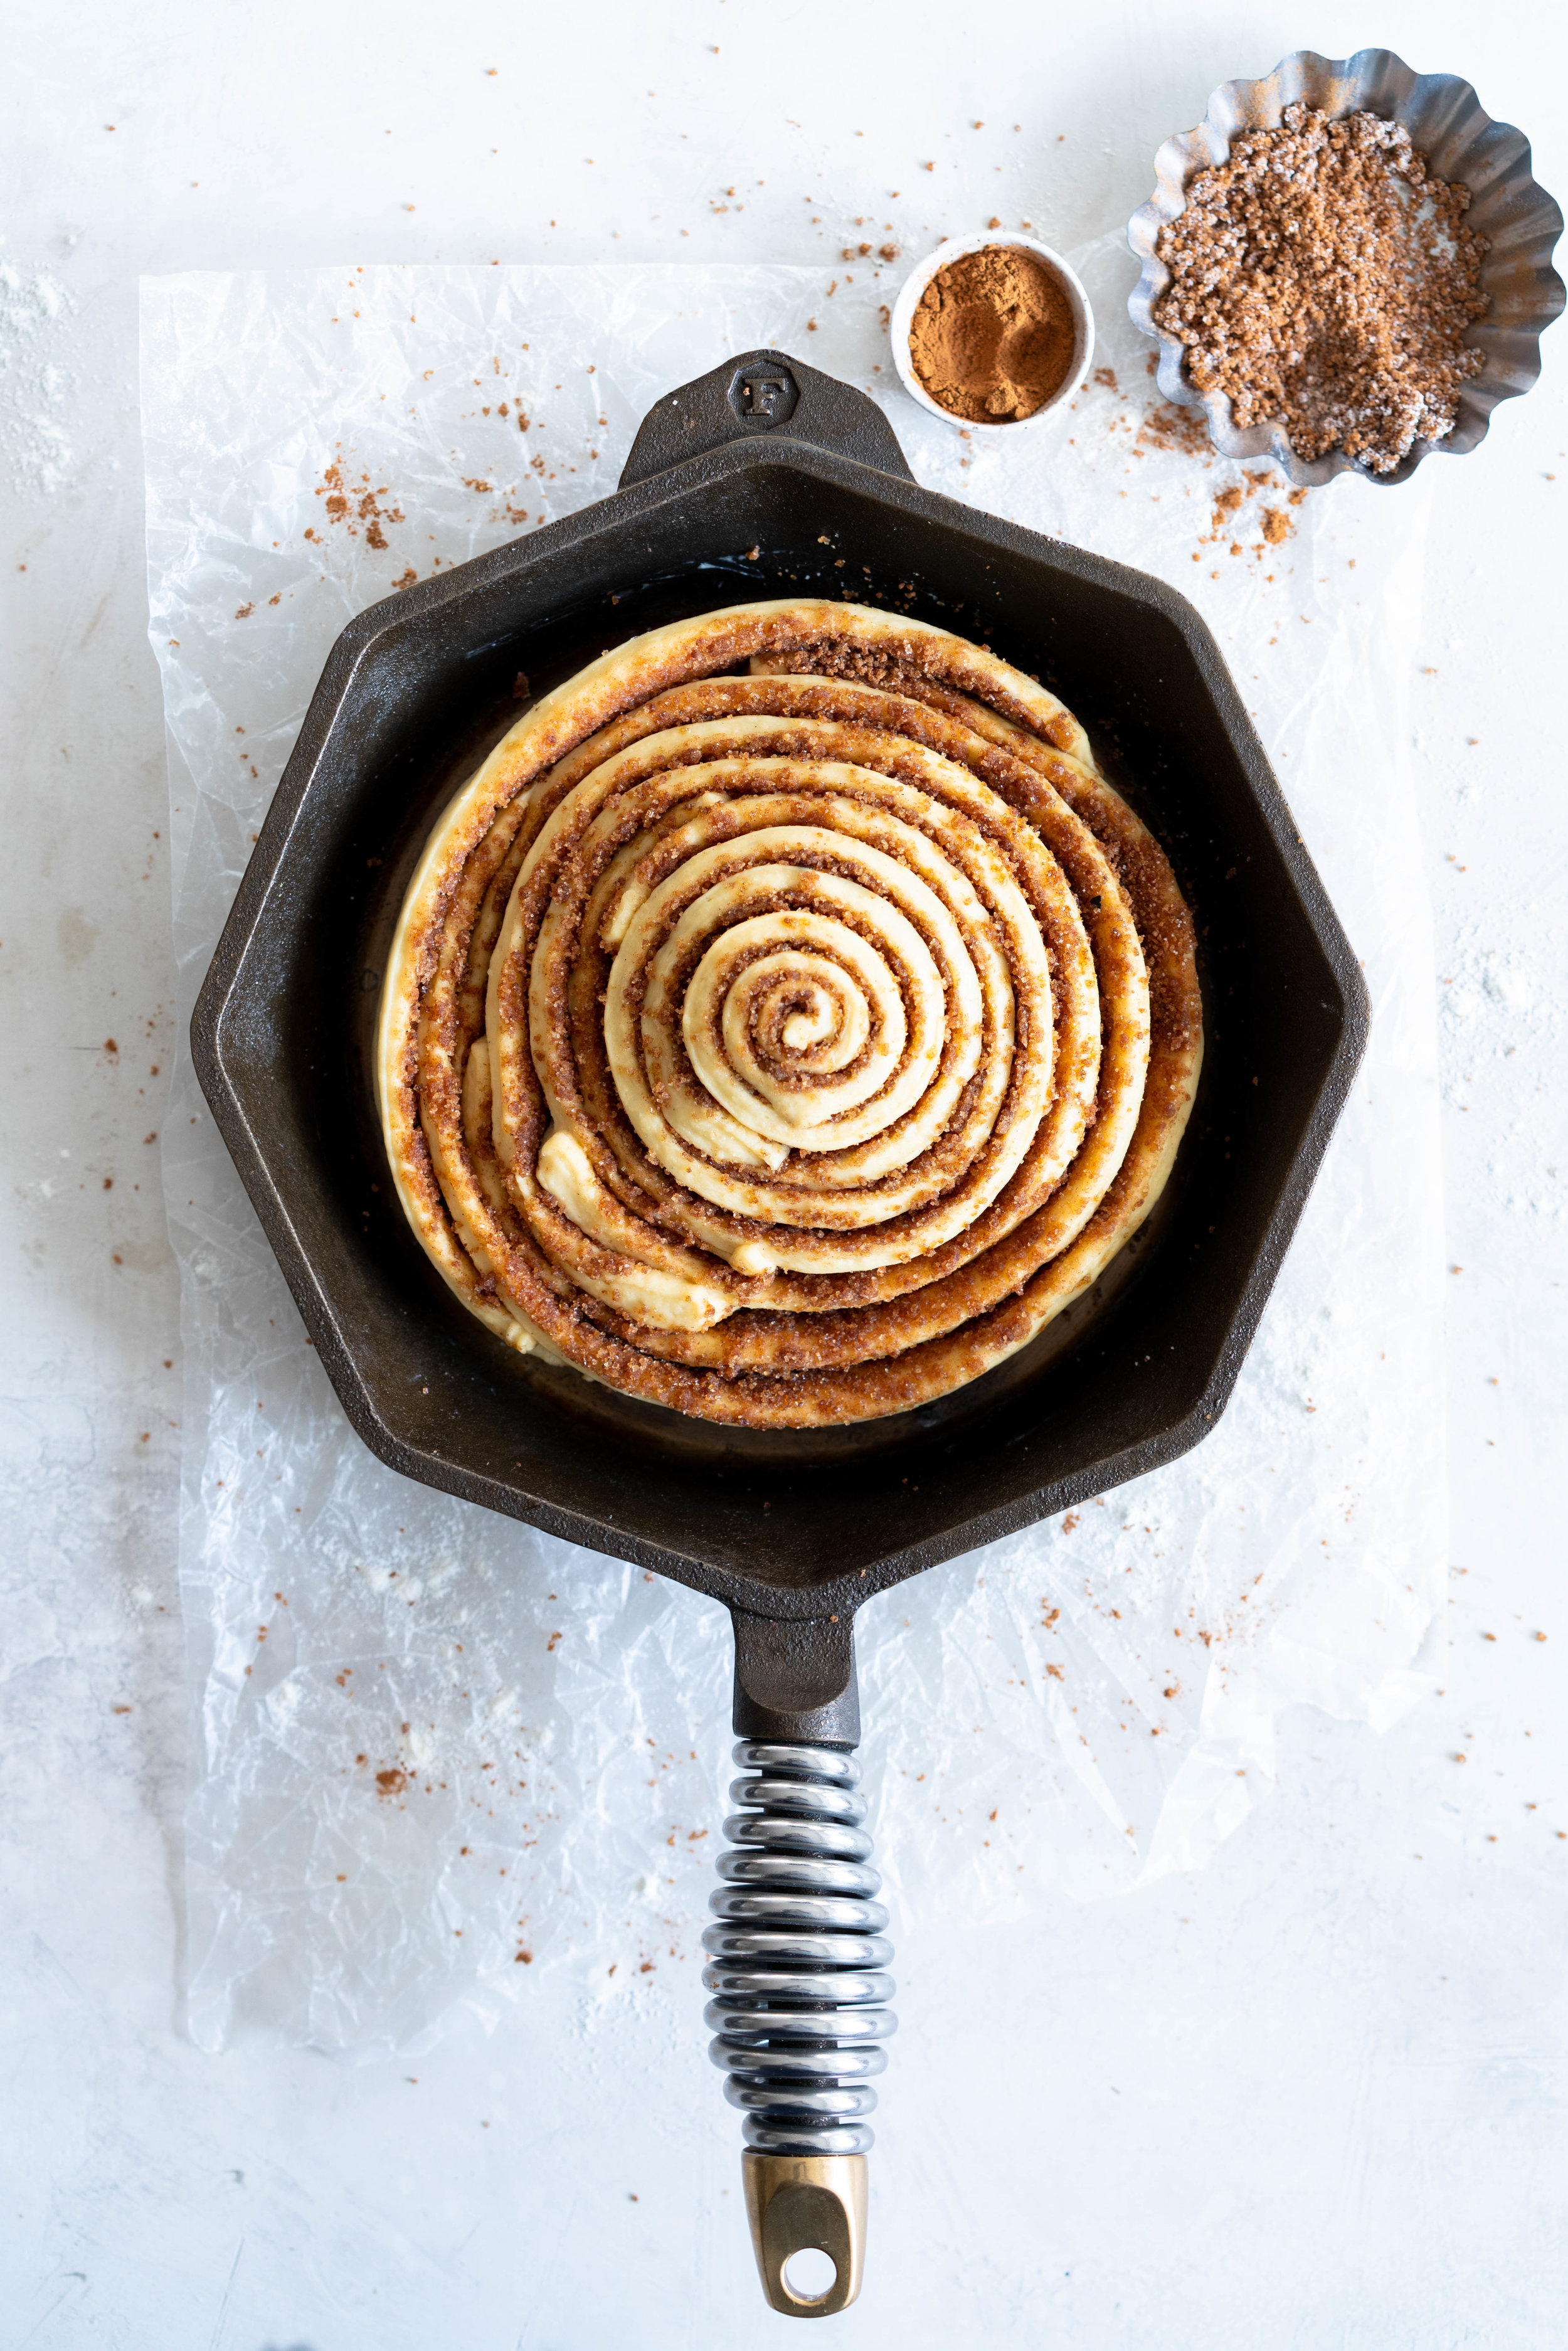 Giant Skillet Cinnamon Roll with Cream Cheese Icing - from Holiday and Celebration bread in five minutes a day. No knead brioche is covered in cinnamon sugar and rolled into a giant cinnamon roll - the most amazing twist on the traditional roll, and perfect for Christmas morning.